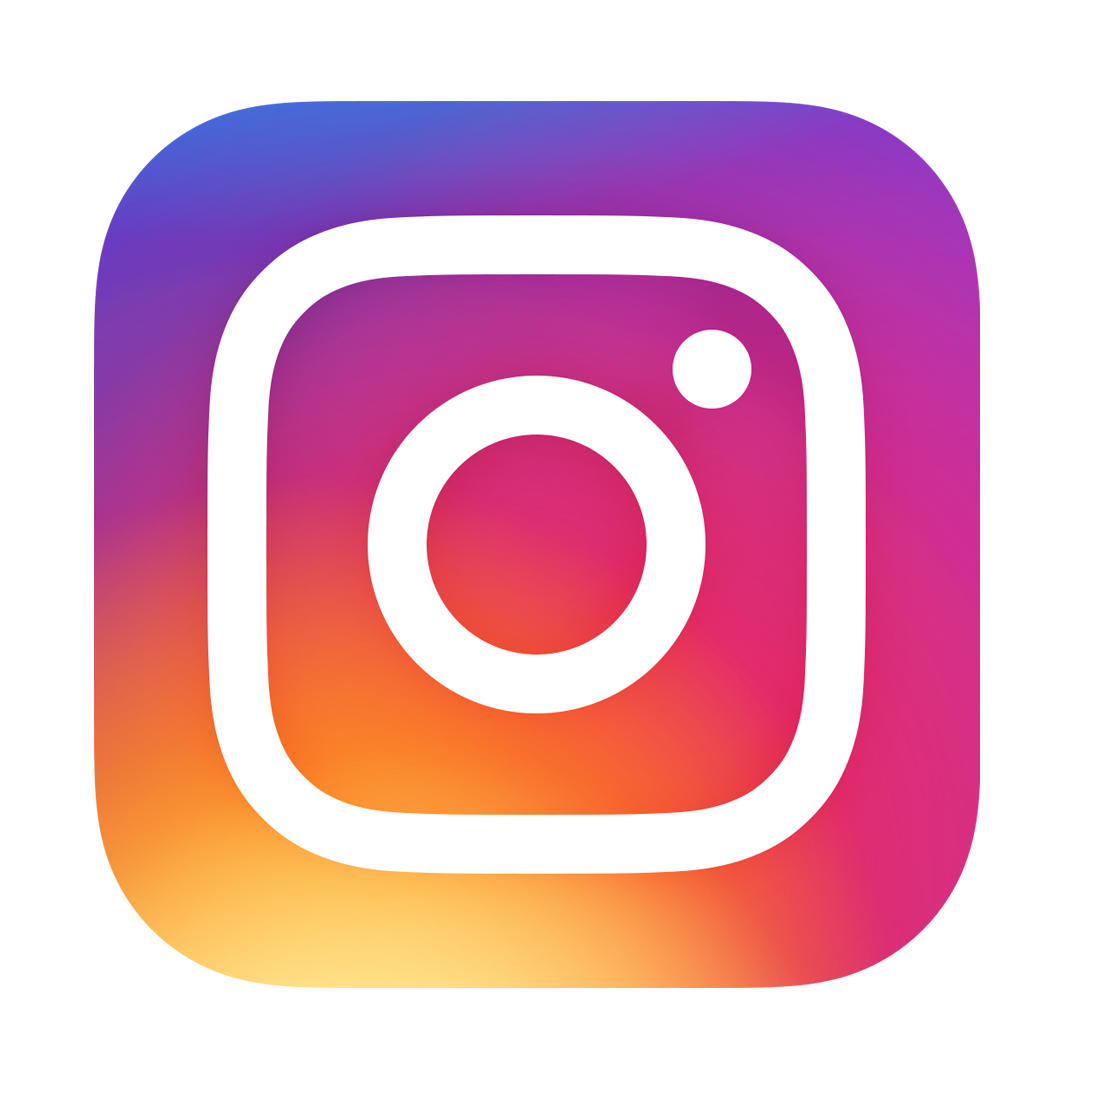 Logo Ig PNG, Logo Instagram Icon Free DOWNLOAD - Free Transparent ...